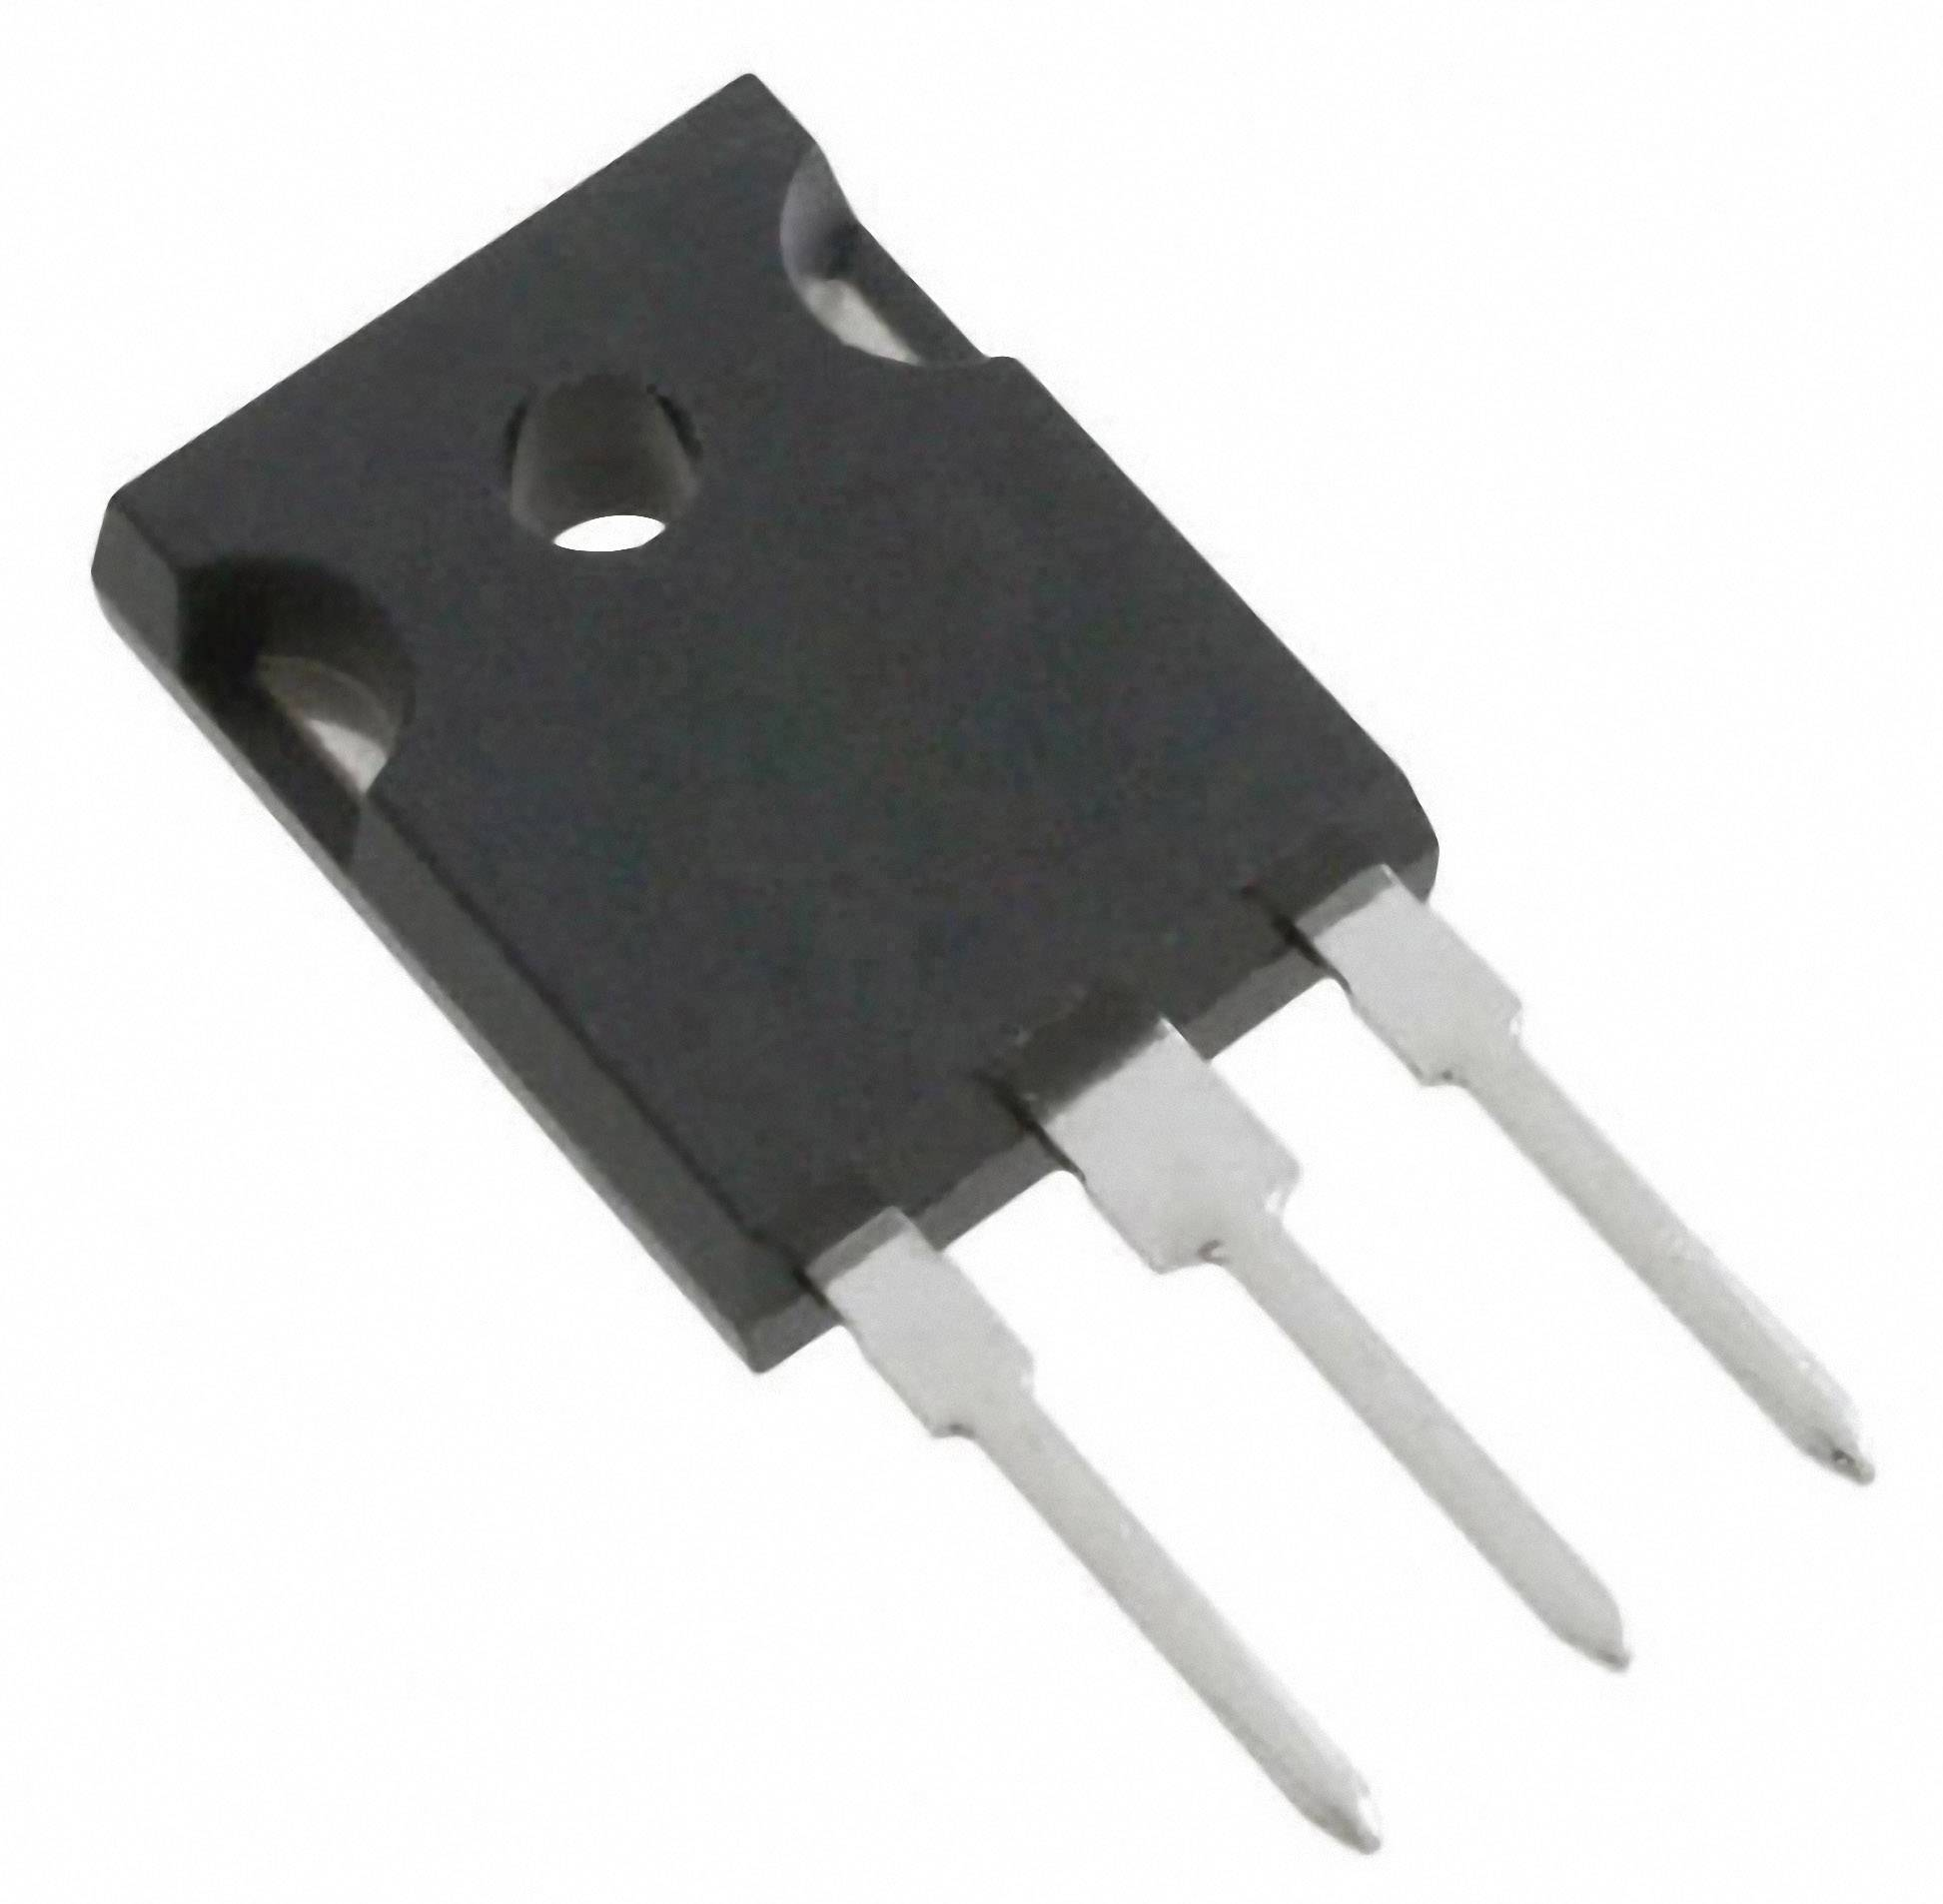 MOSFET Fairchild Semiconductor N kanál N-CH 55 FDH5500_F085 TO-247-3 FSC